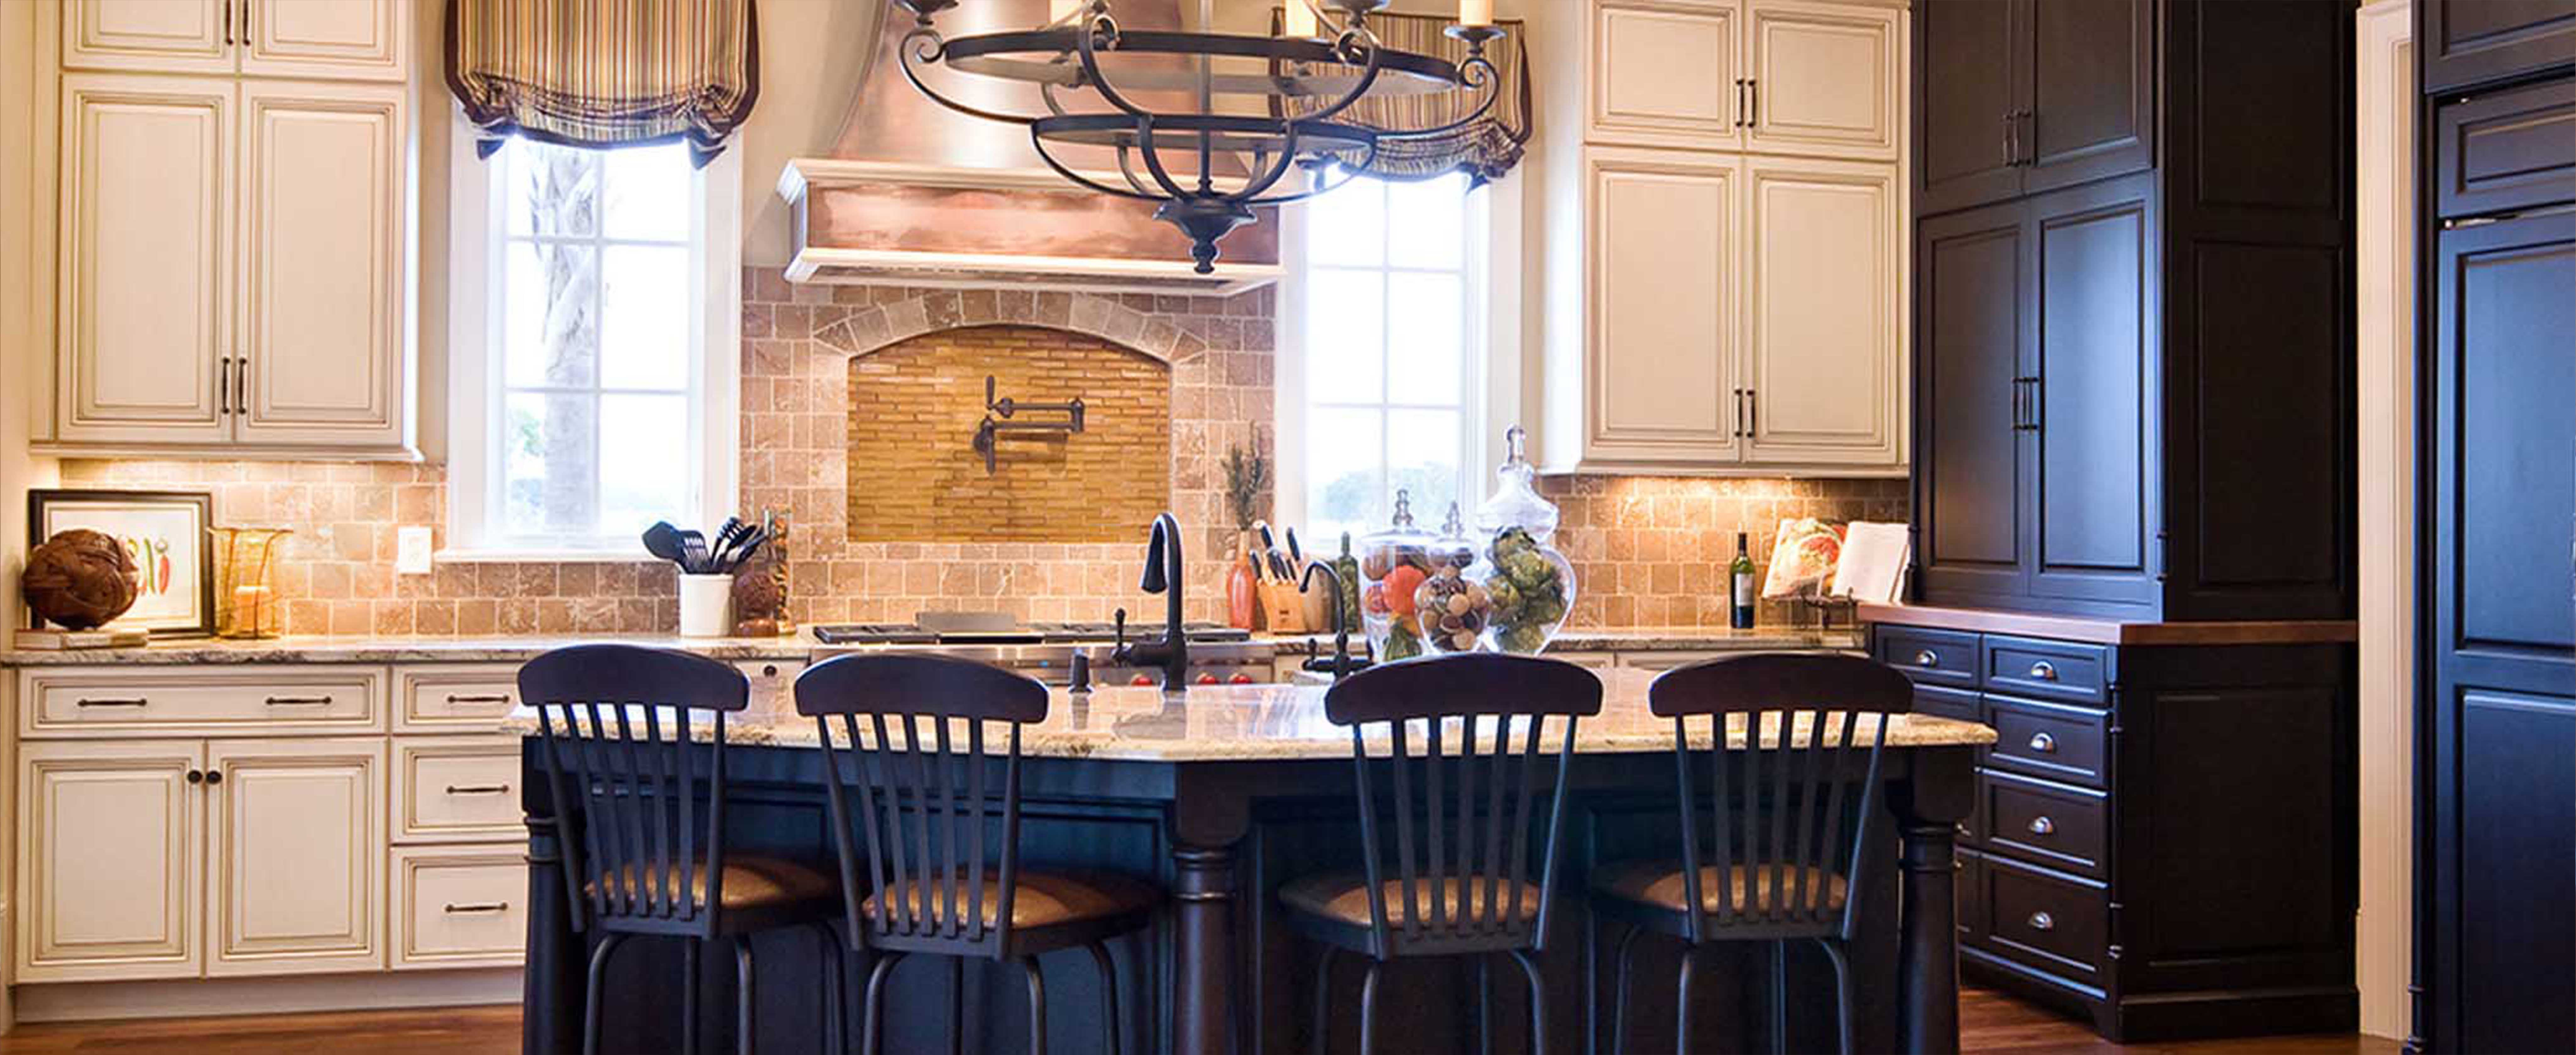 Kitchen, Bath & Home Remodeling Contractors in Palm Harbor ...